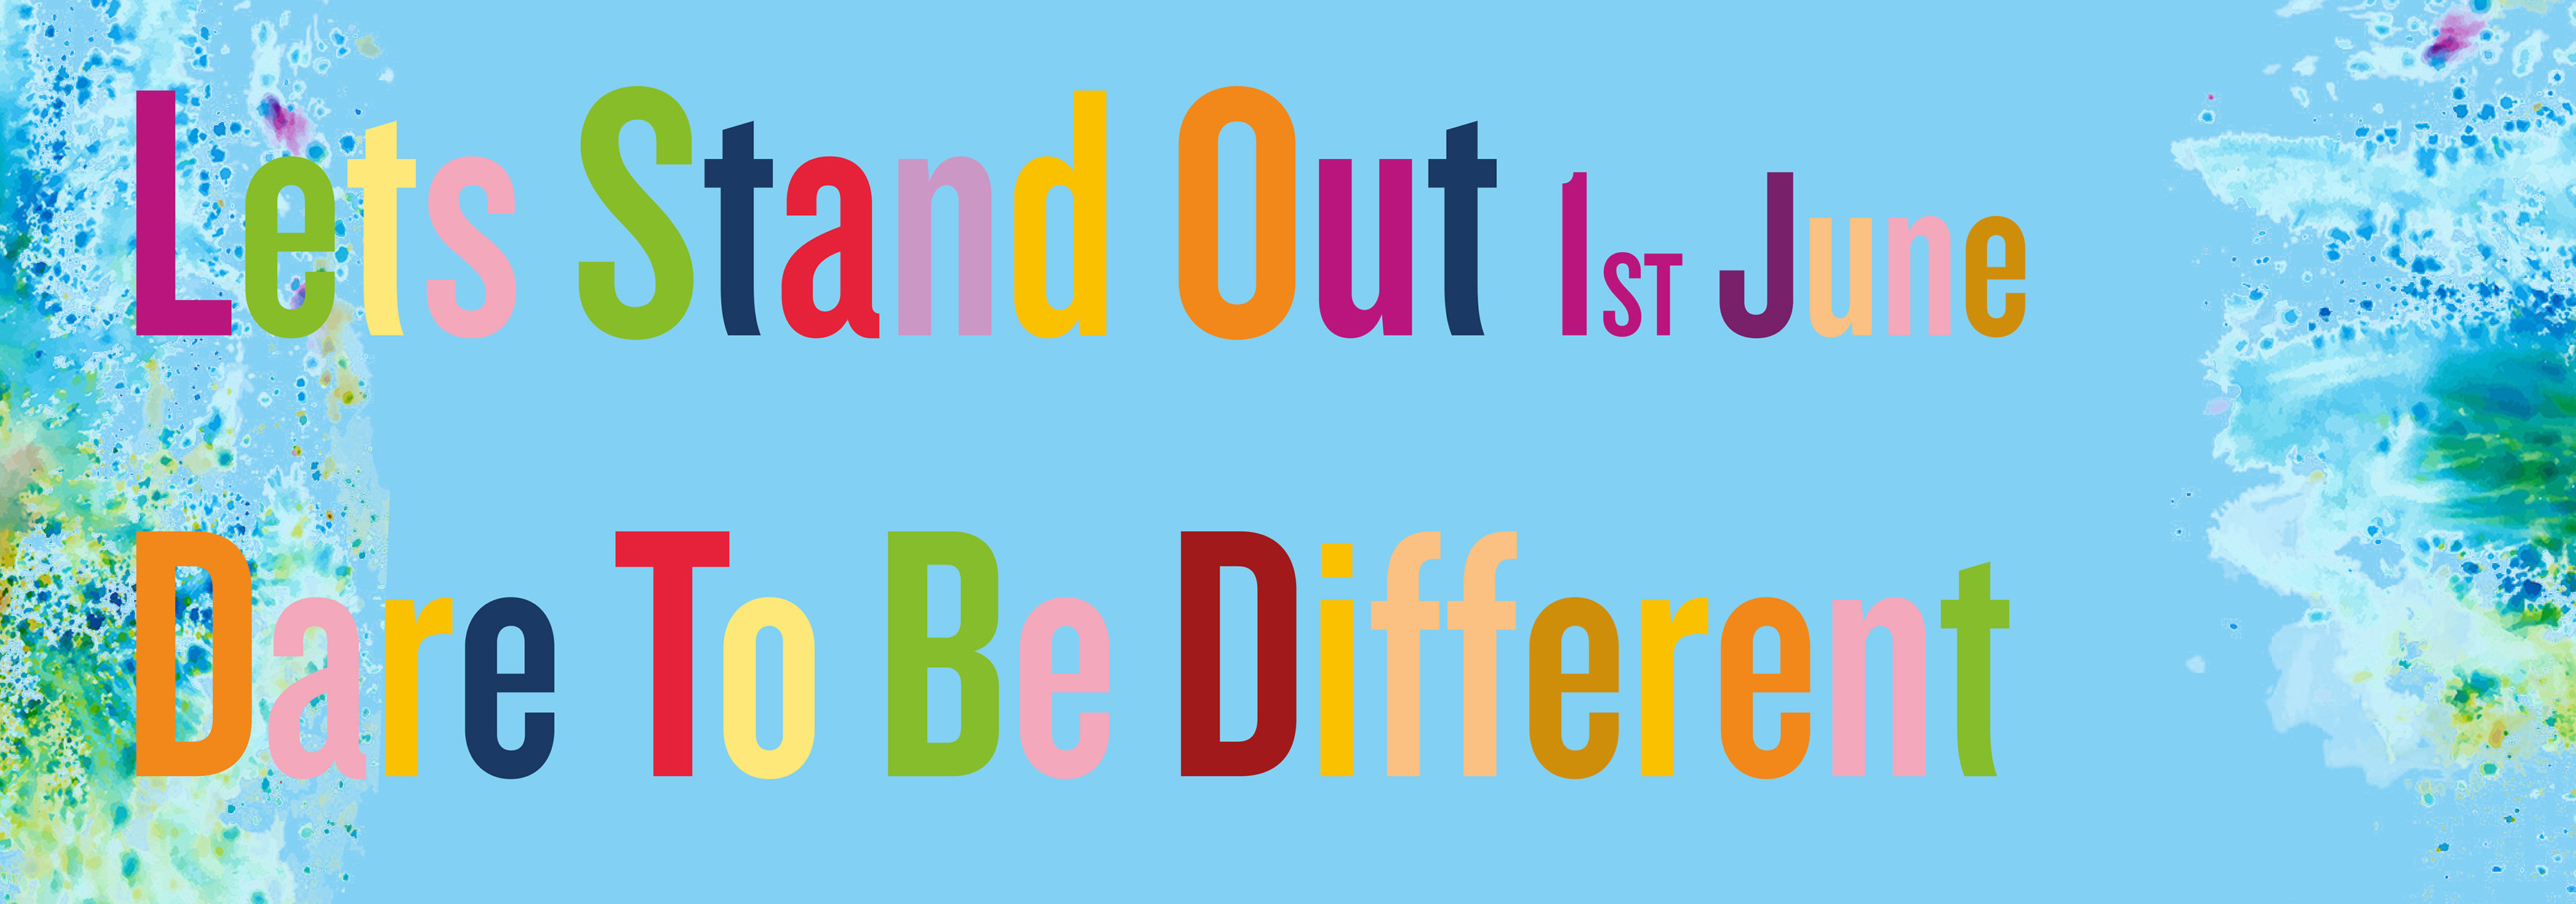 DARE TO BE DIFFERENT 2021 Banner.jpg- fb